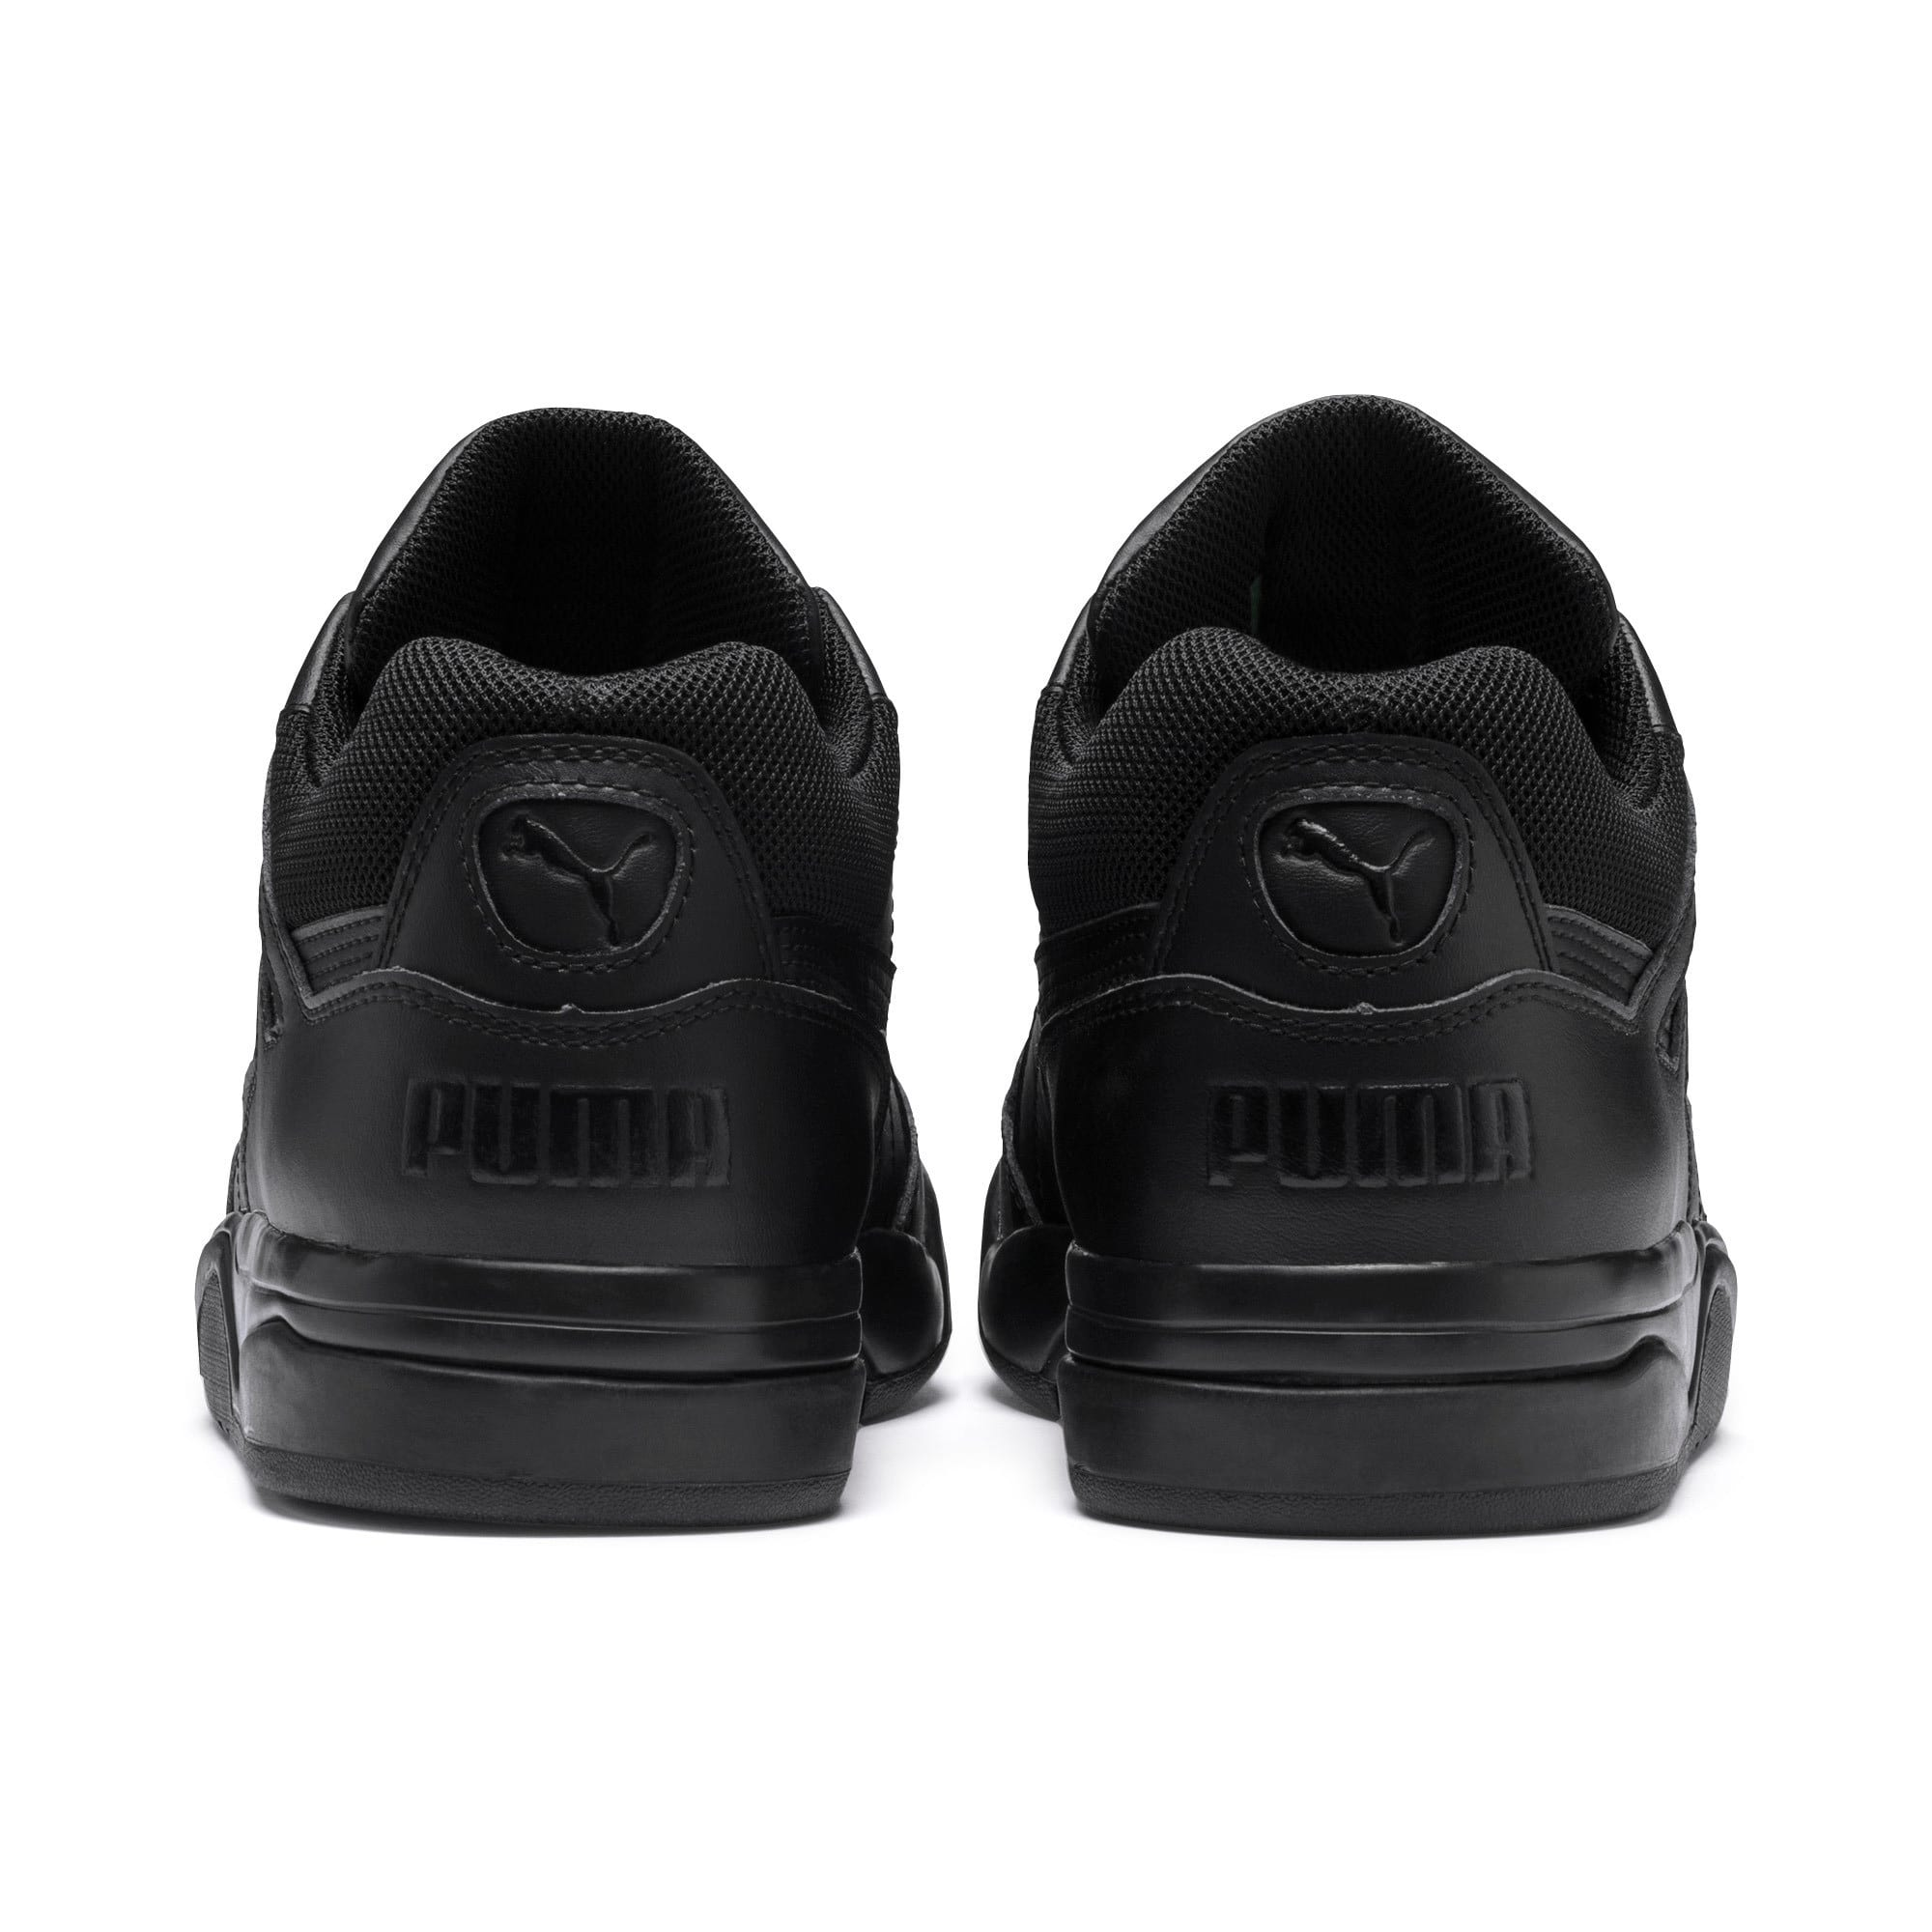 Thumbnail 3 of Palace Guard Sneakers, Puma Black-Puma White, medium